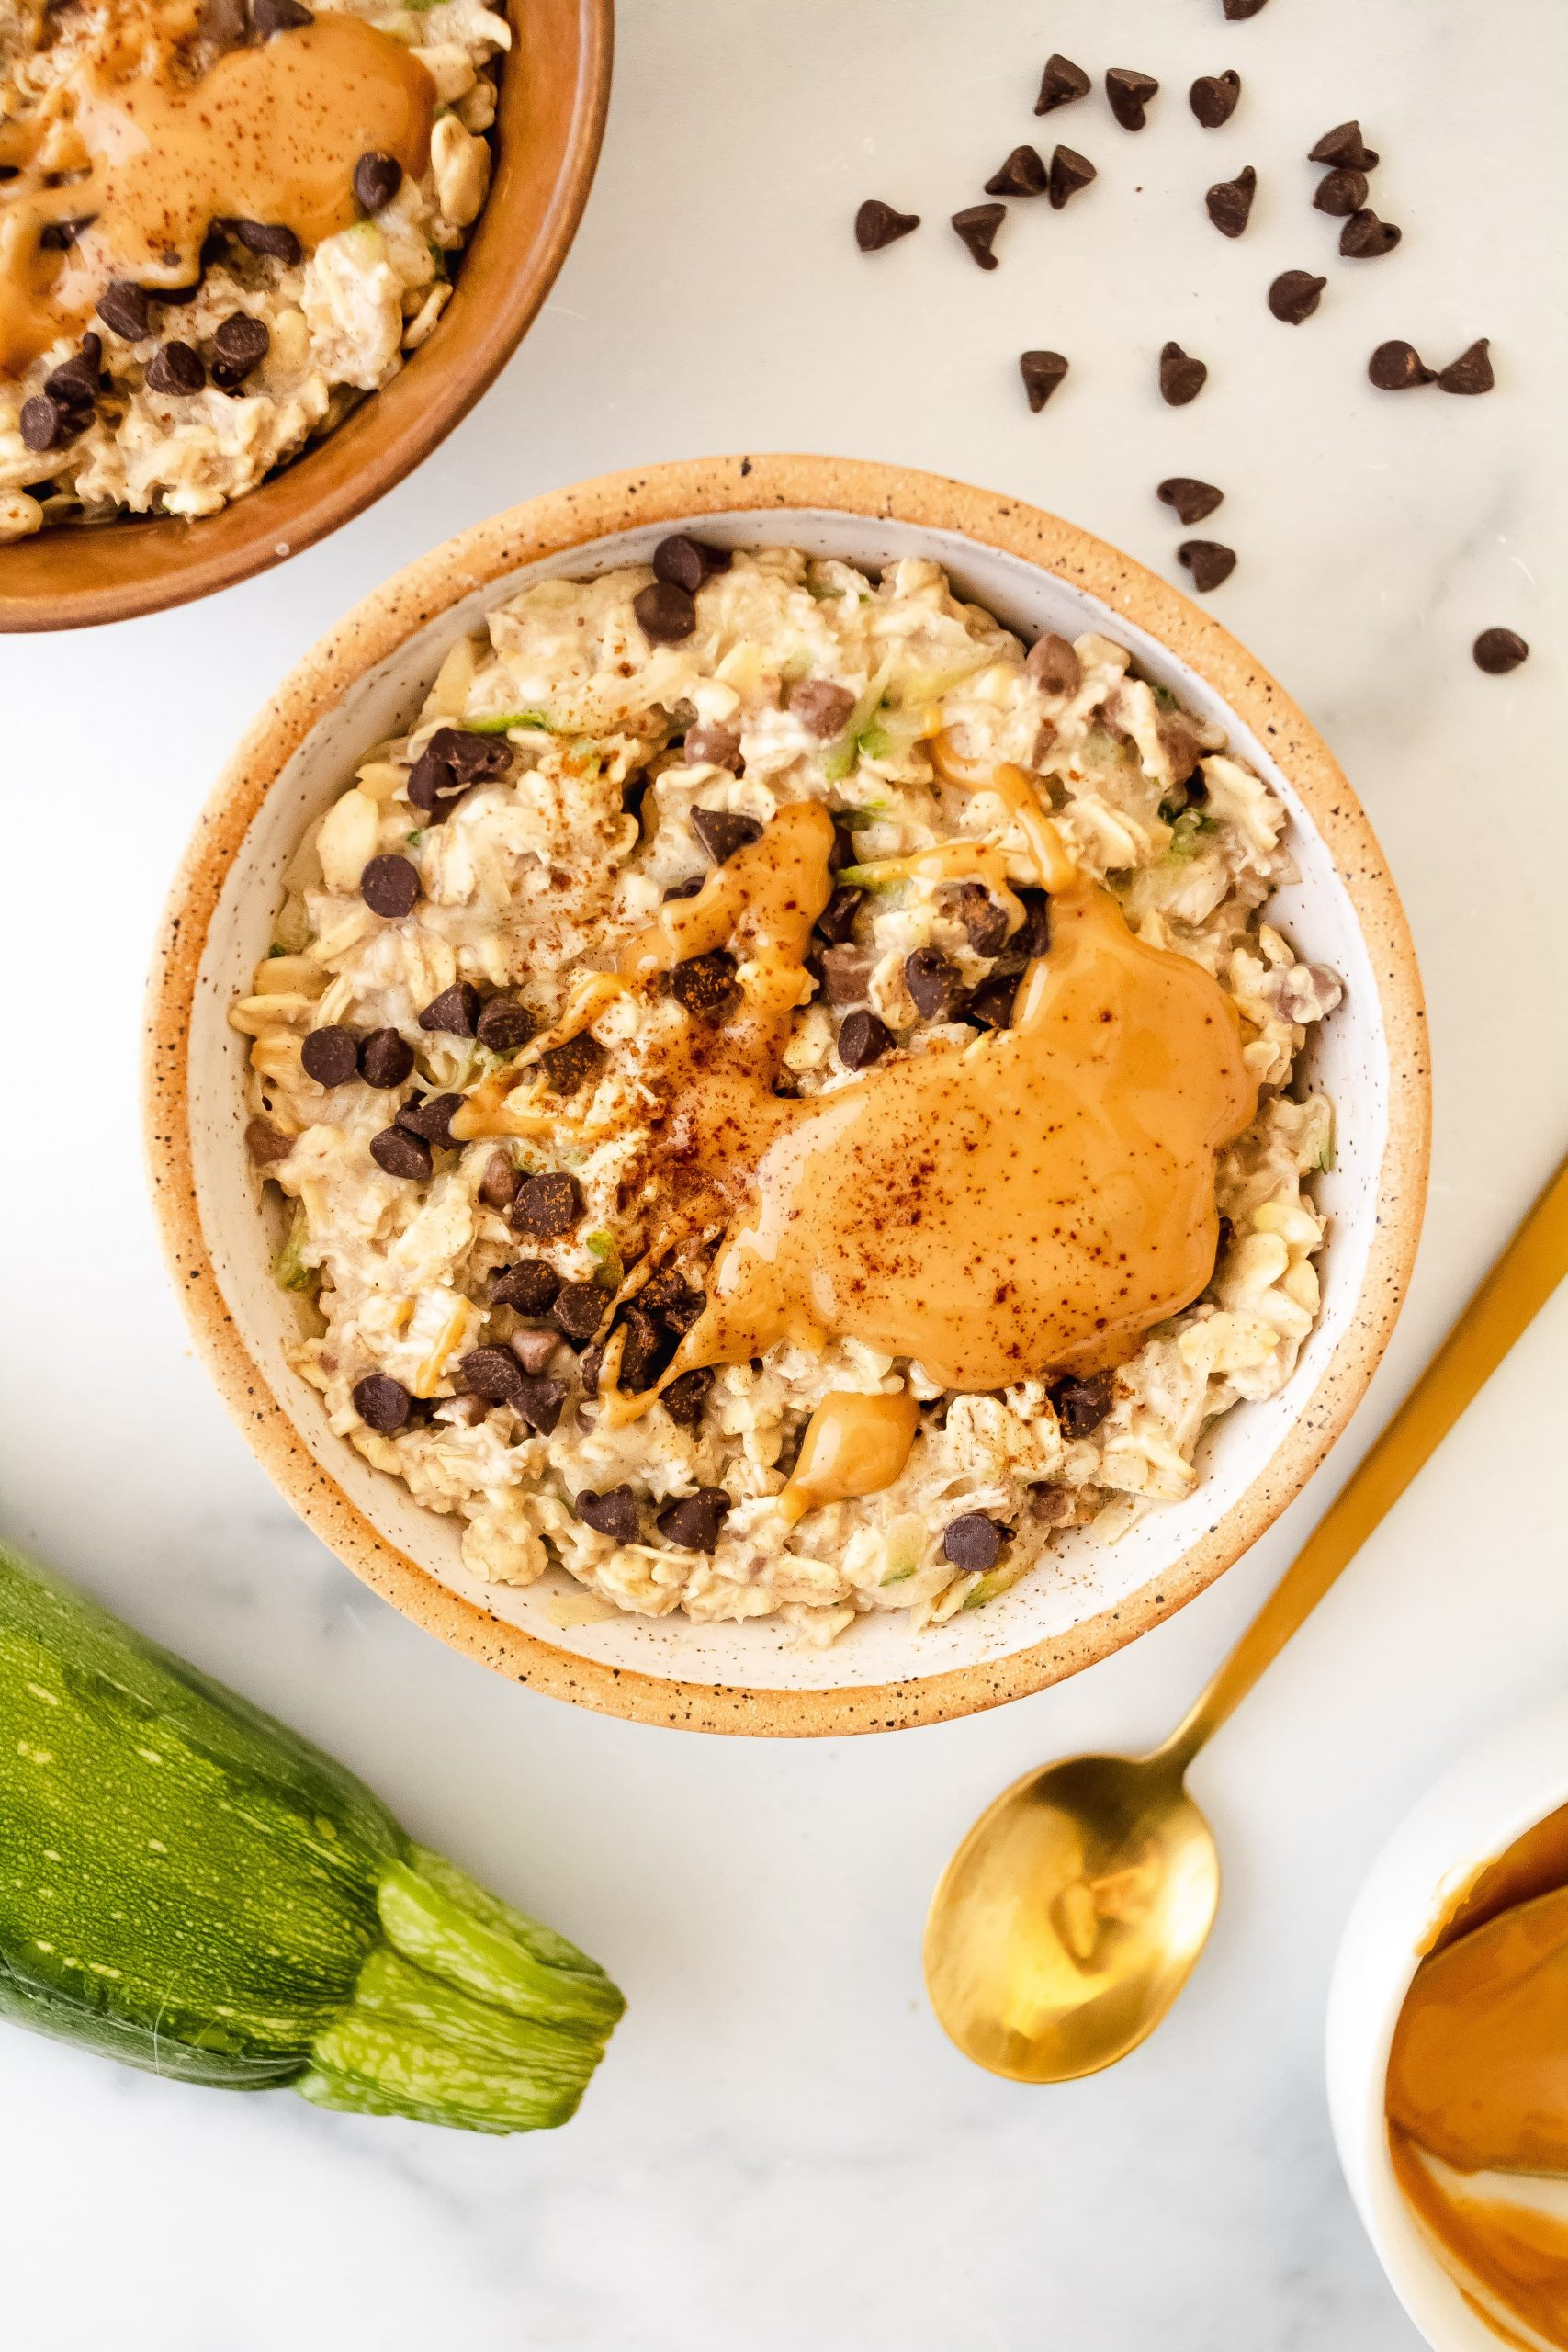 zucchini overnight oats with chocolate chips and creamy peanut butter